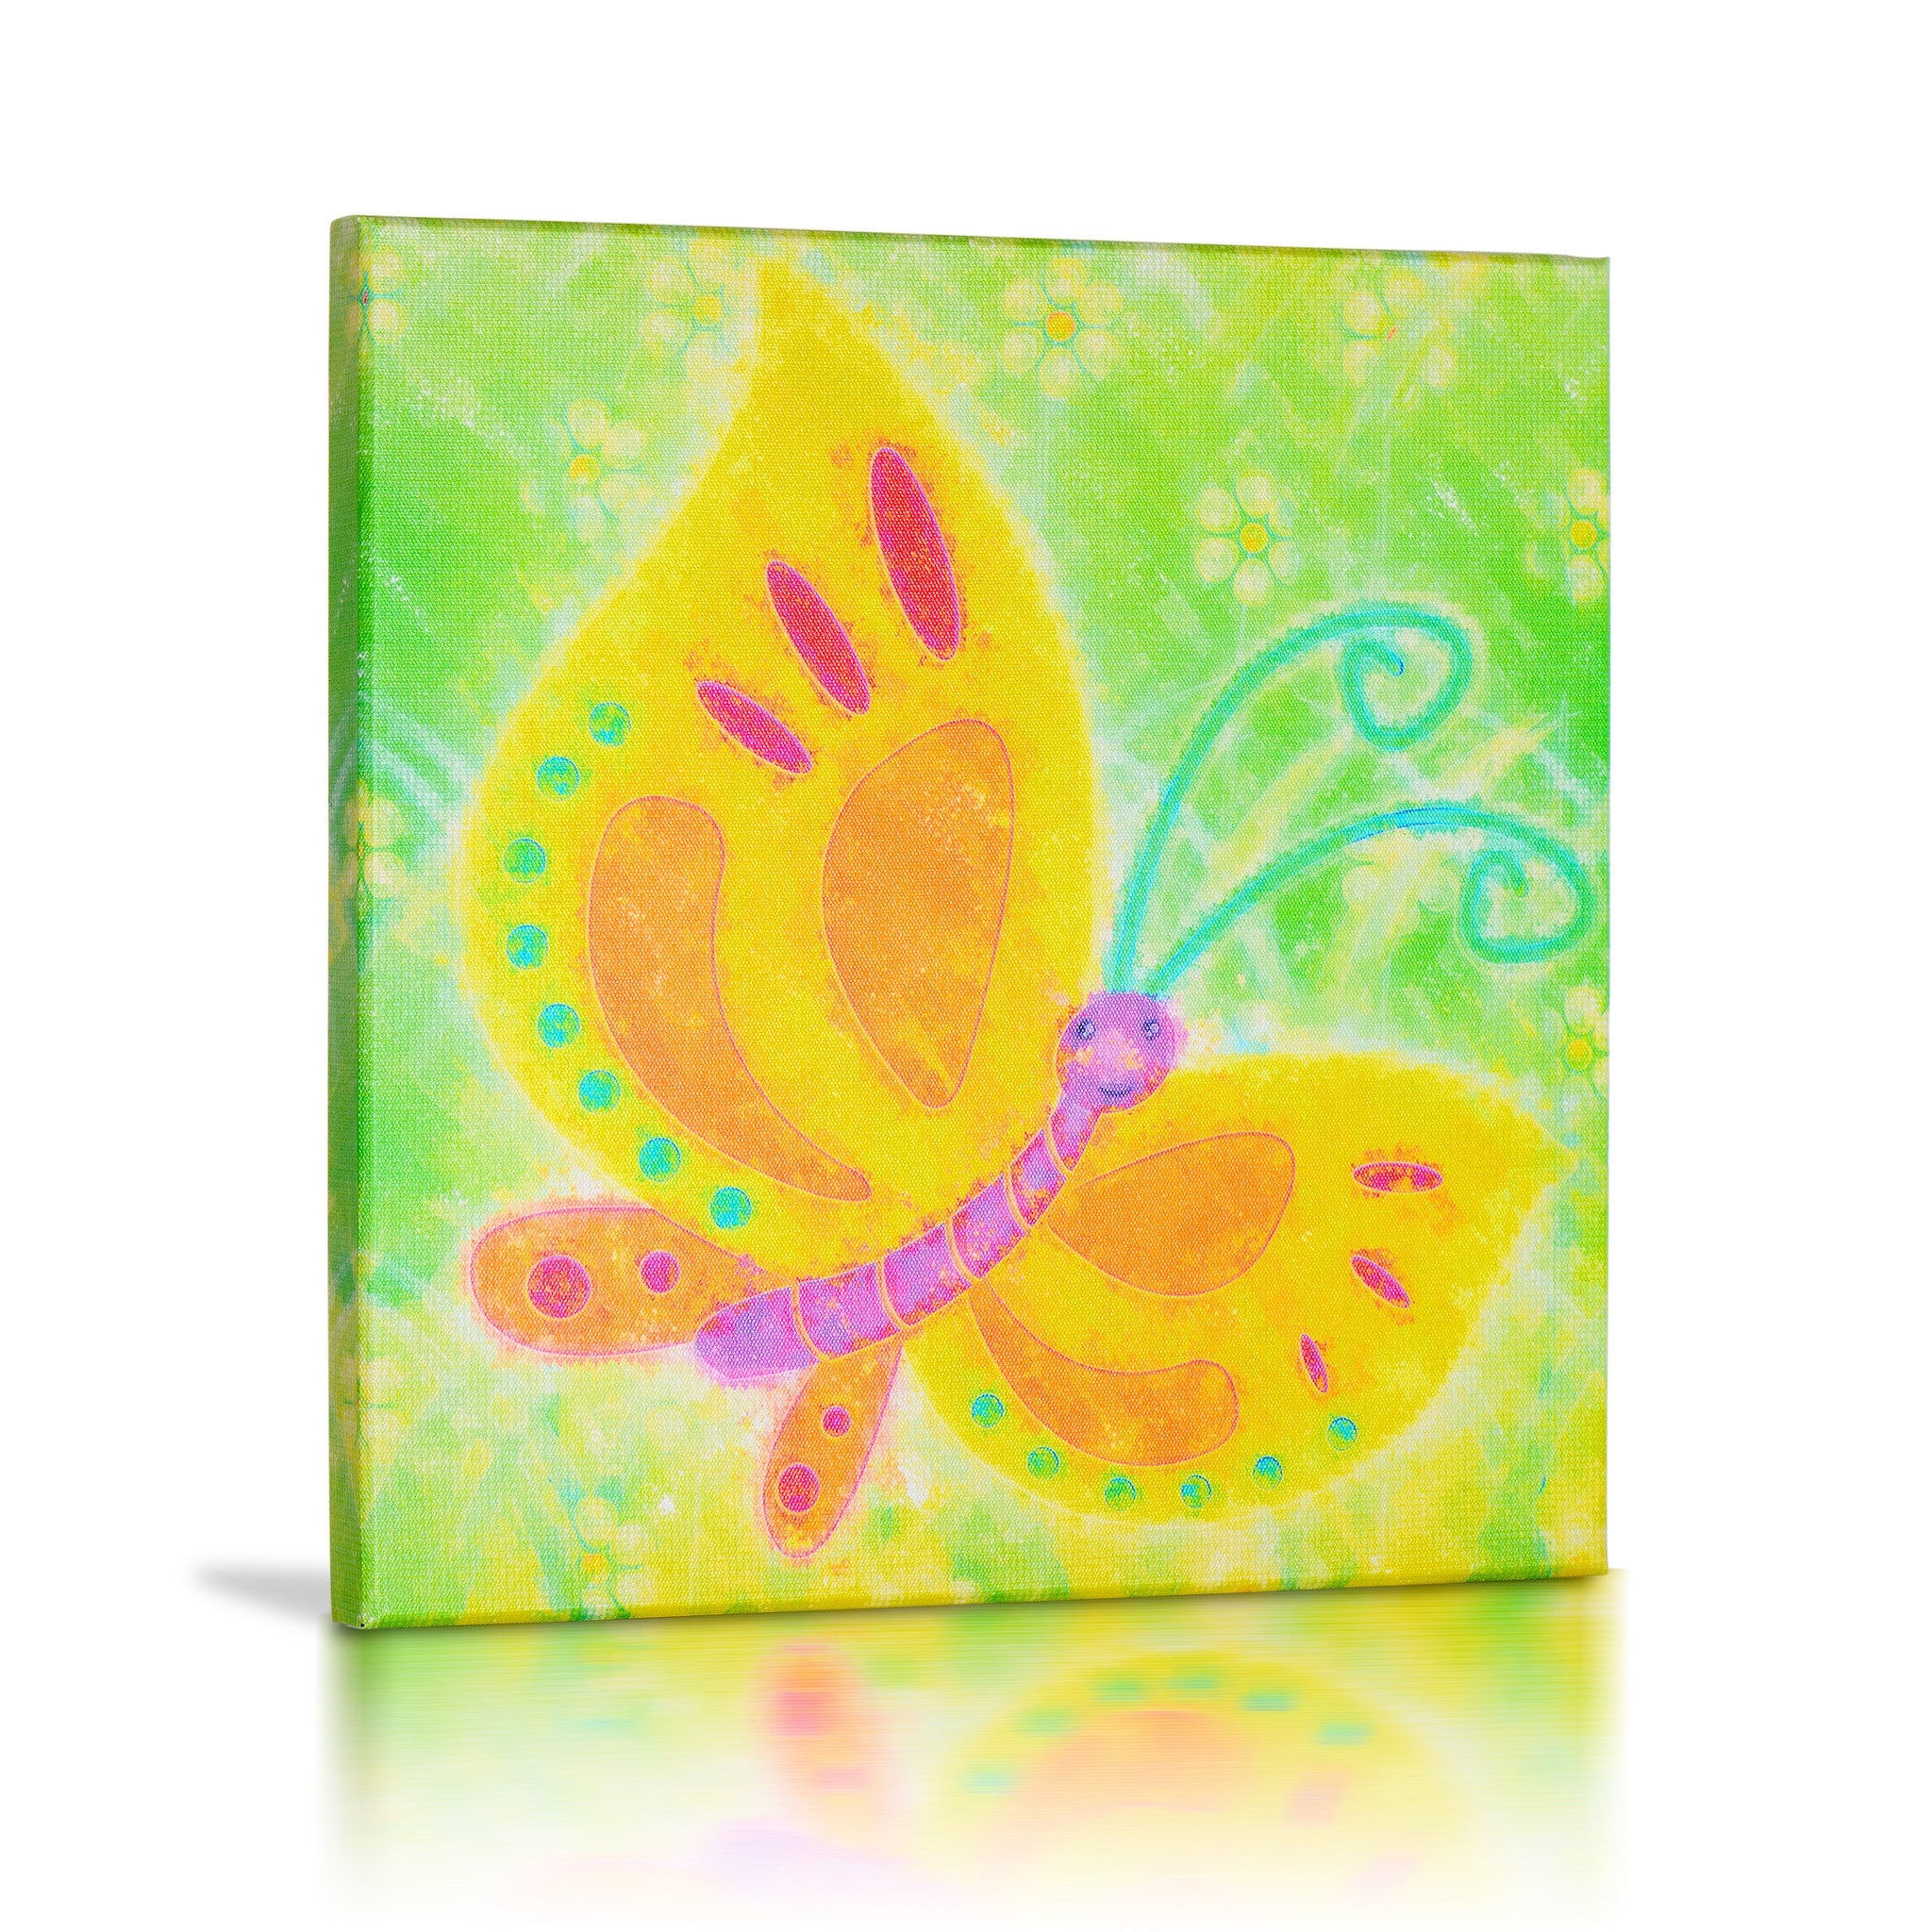 Snail, Butterfly & Dragonfly\' Gallery Wrapped Canvas Art - 3pc Set ...